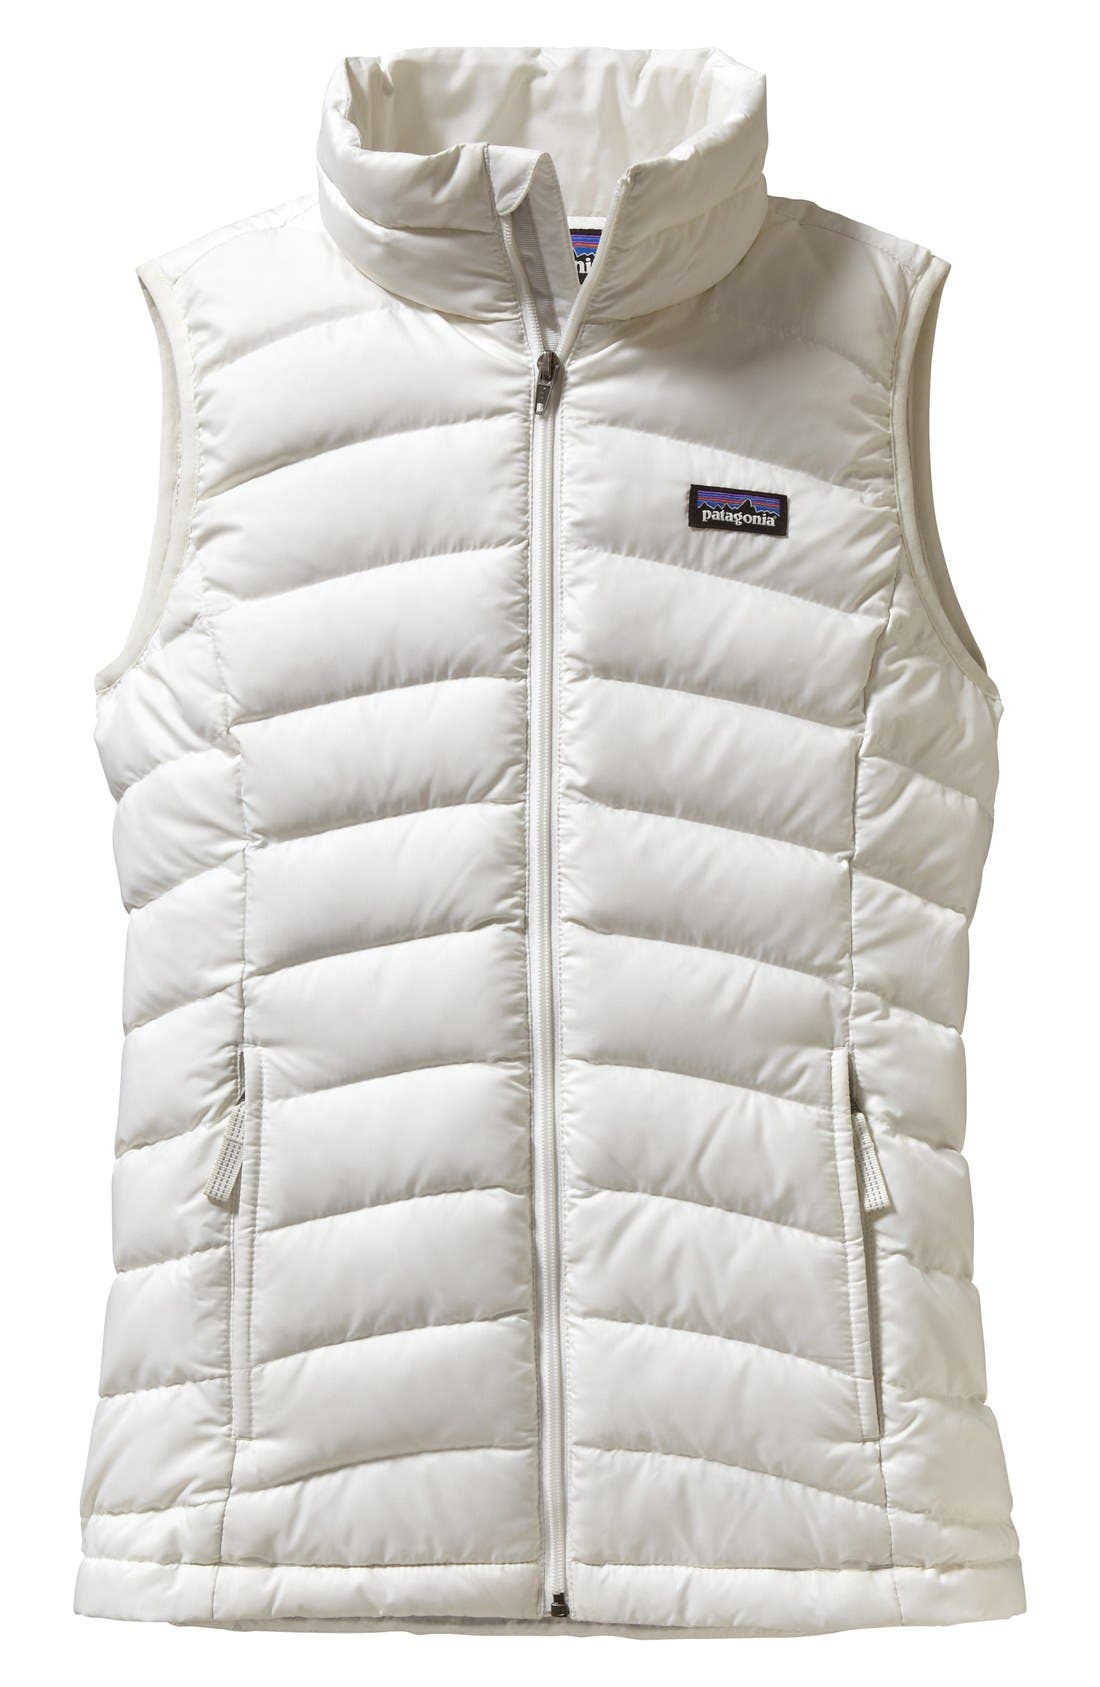 Main Image - Patagonia Windproof & Water Resistant Down Sweater Vest (Little Girls & Big Girls)